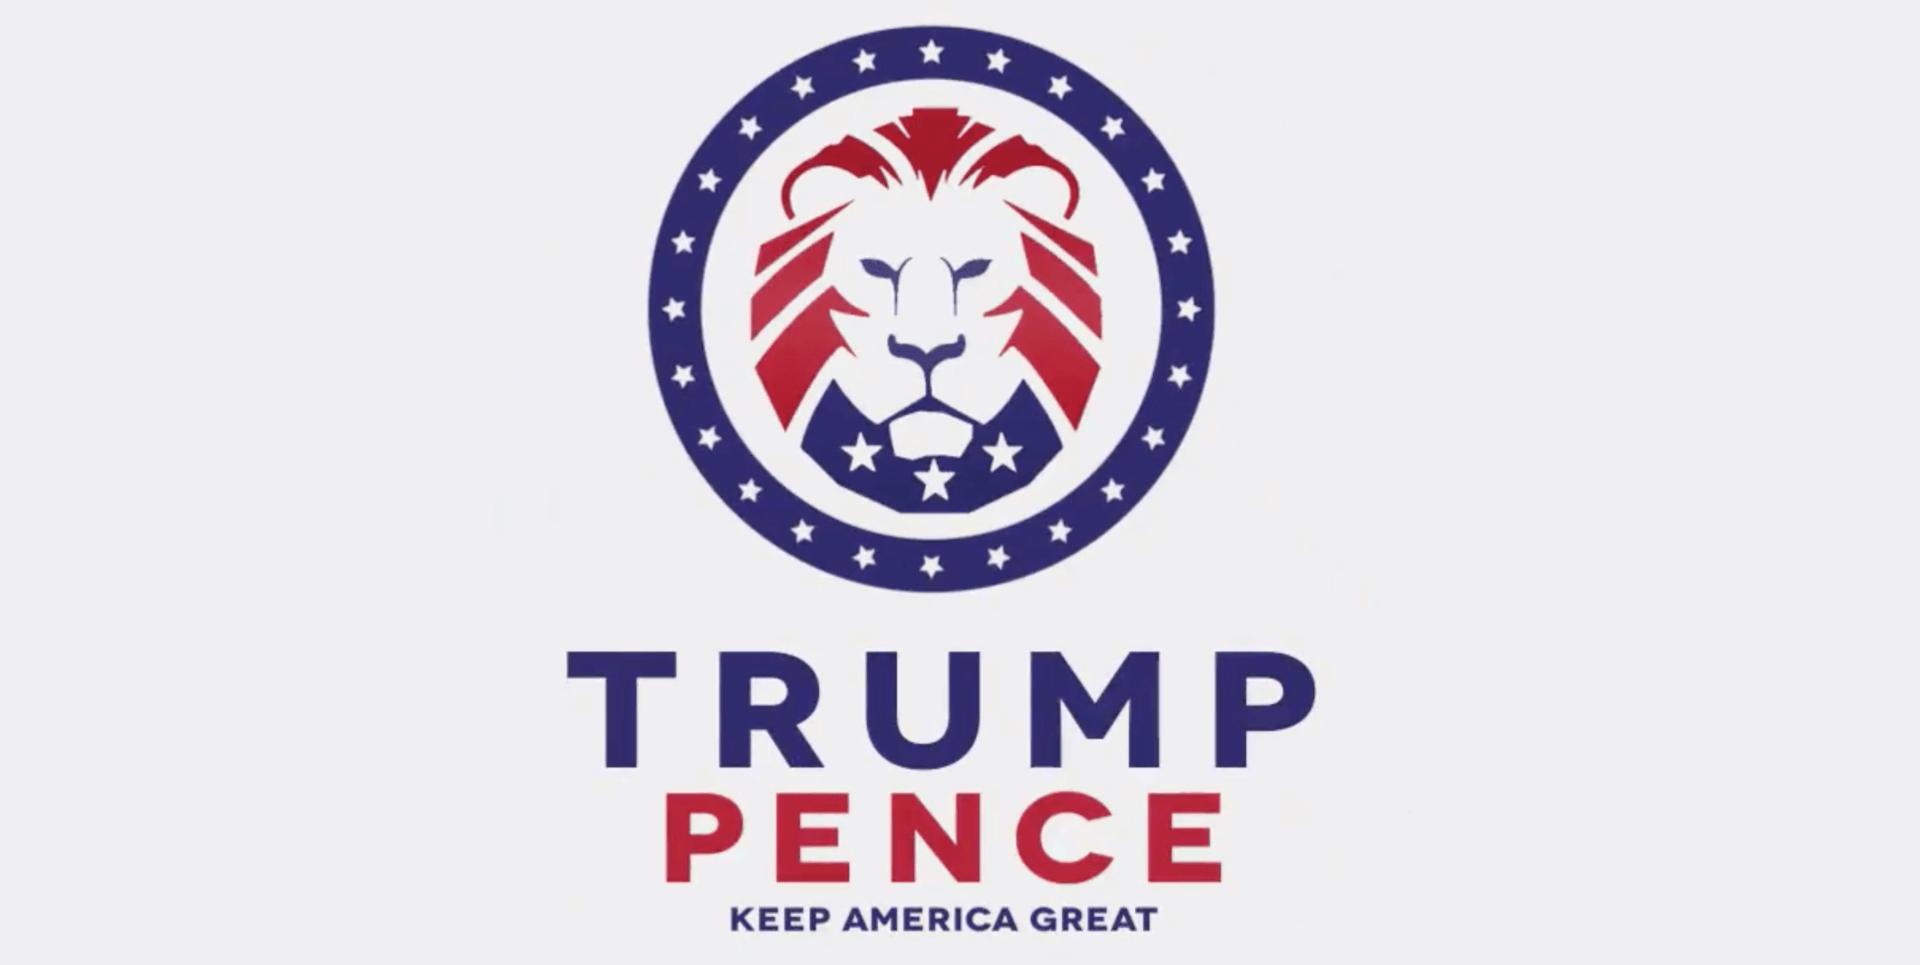 Trump Shares 2020 Logo Linked to White Nationalist Website.